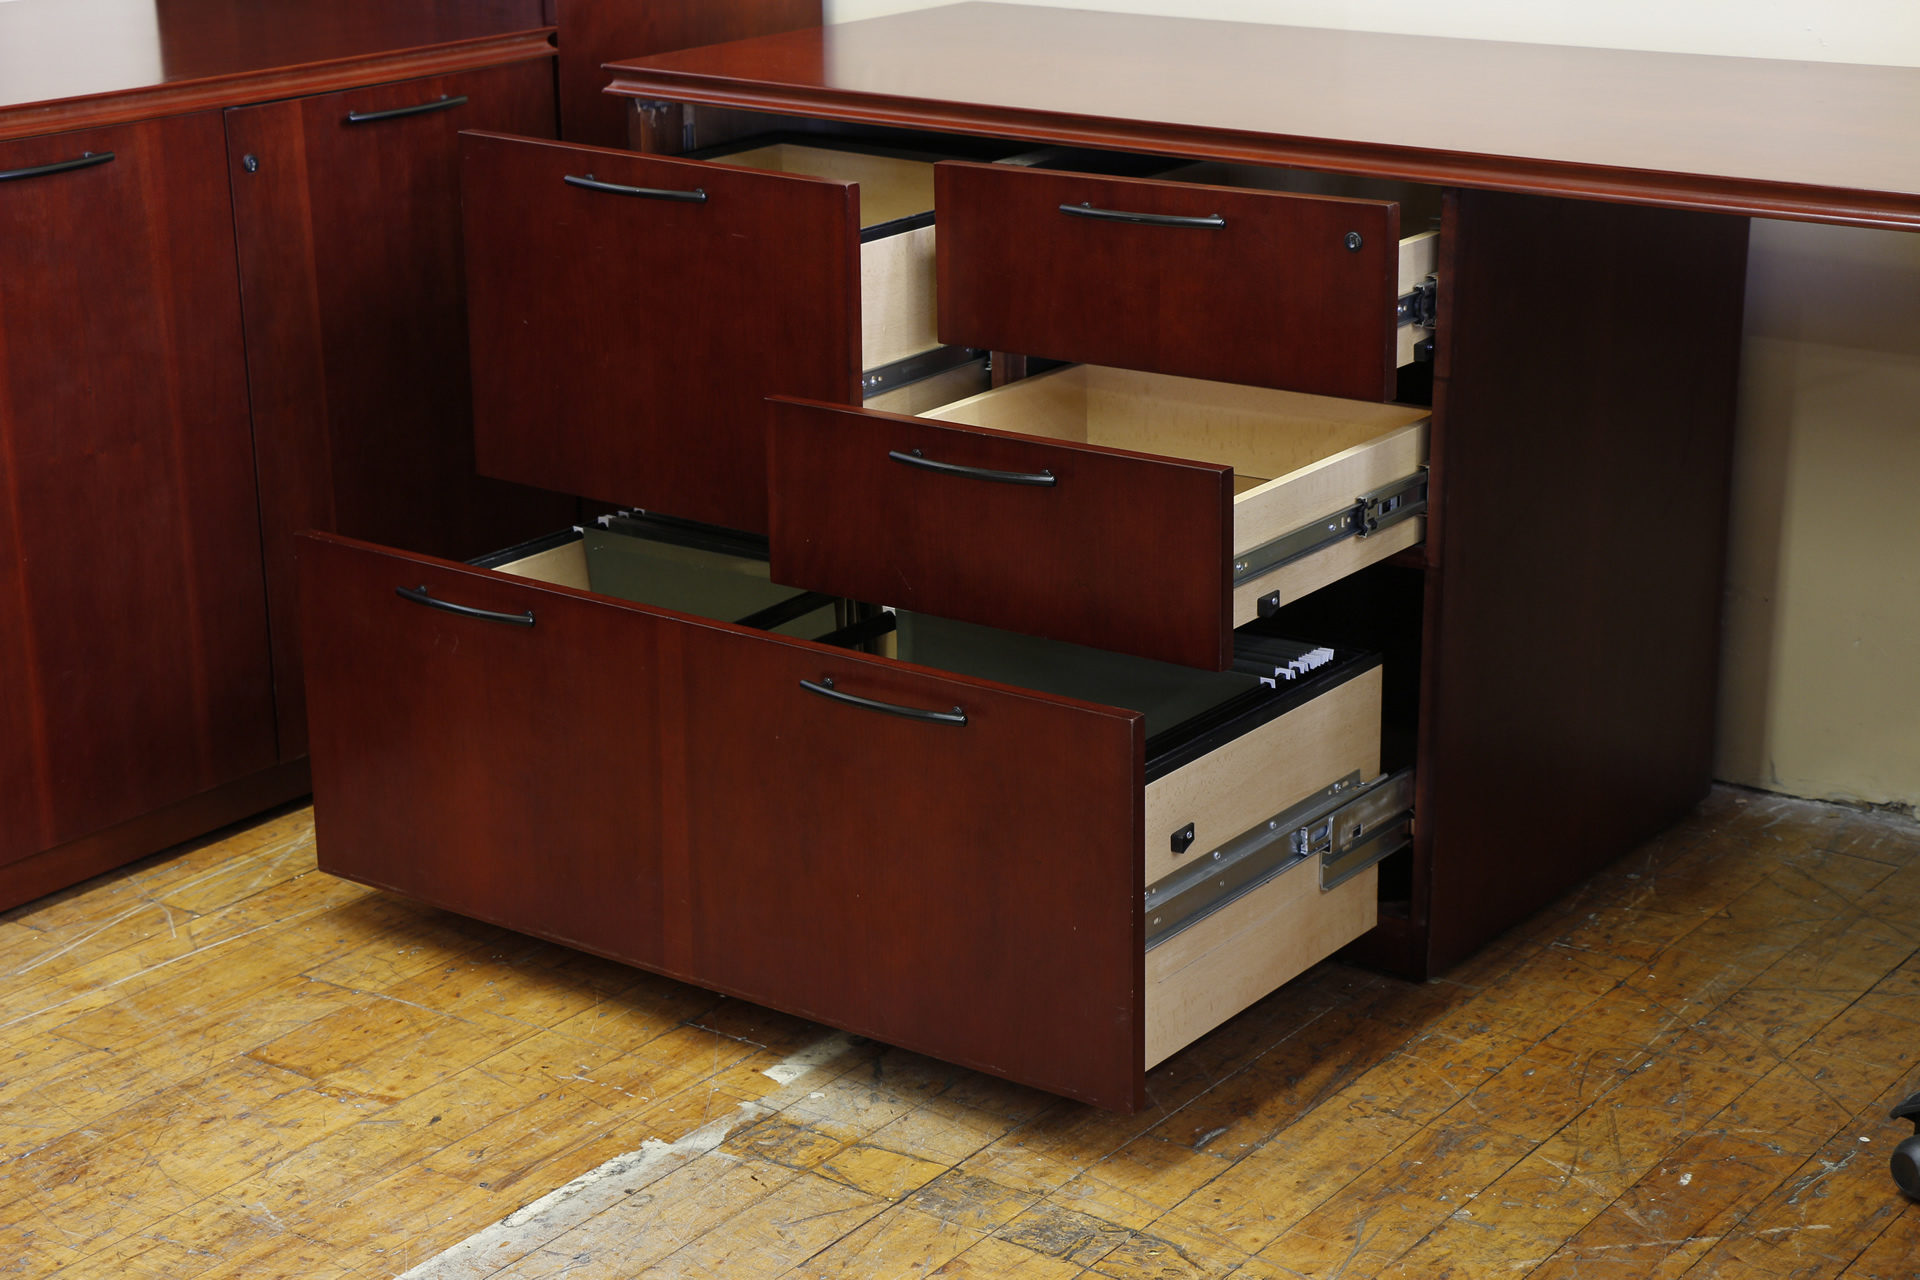 peartreeofficefurniture_peartreeofficefurniture_mg_4214.jpg